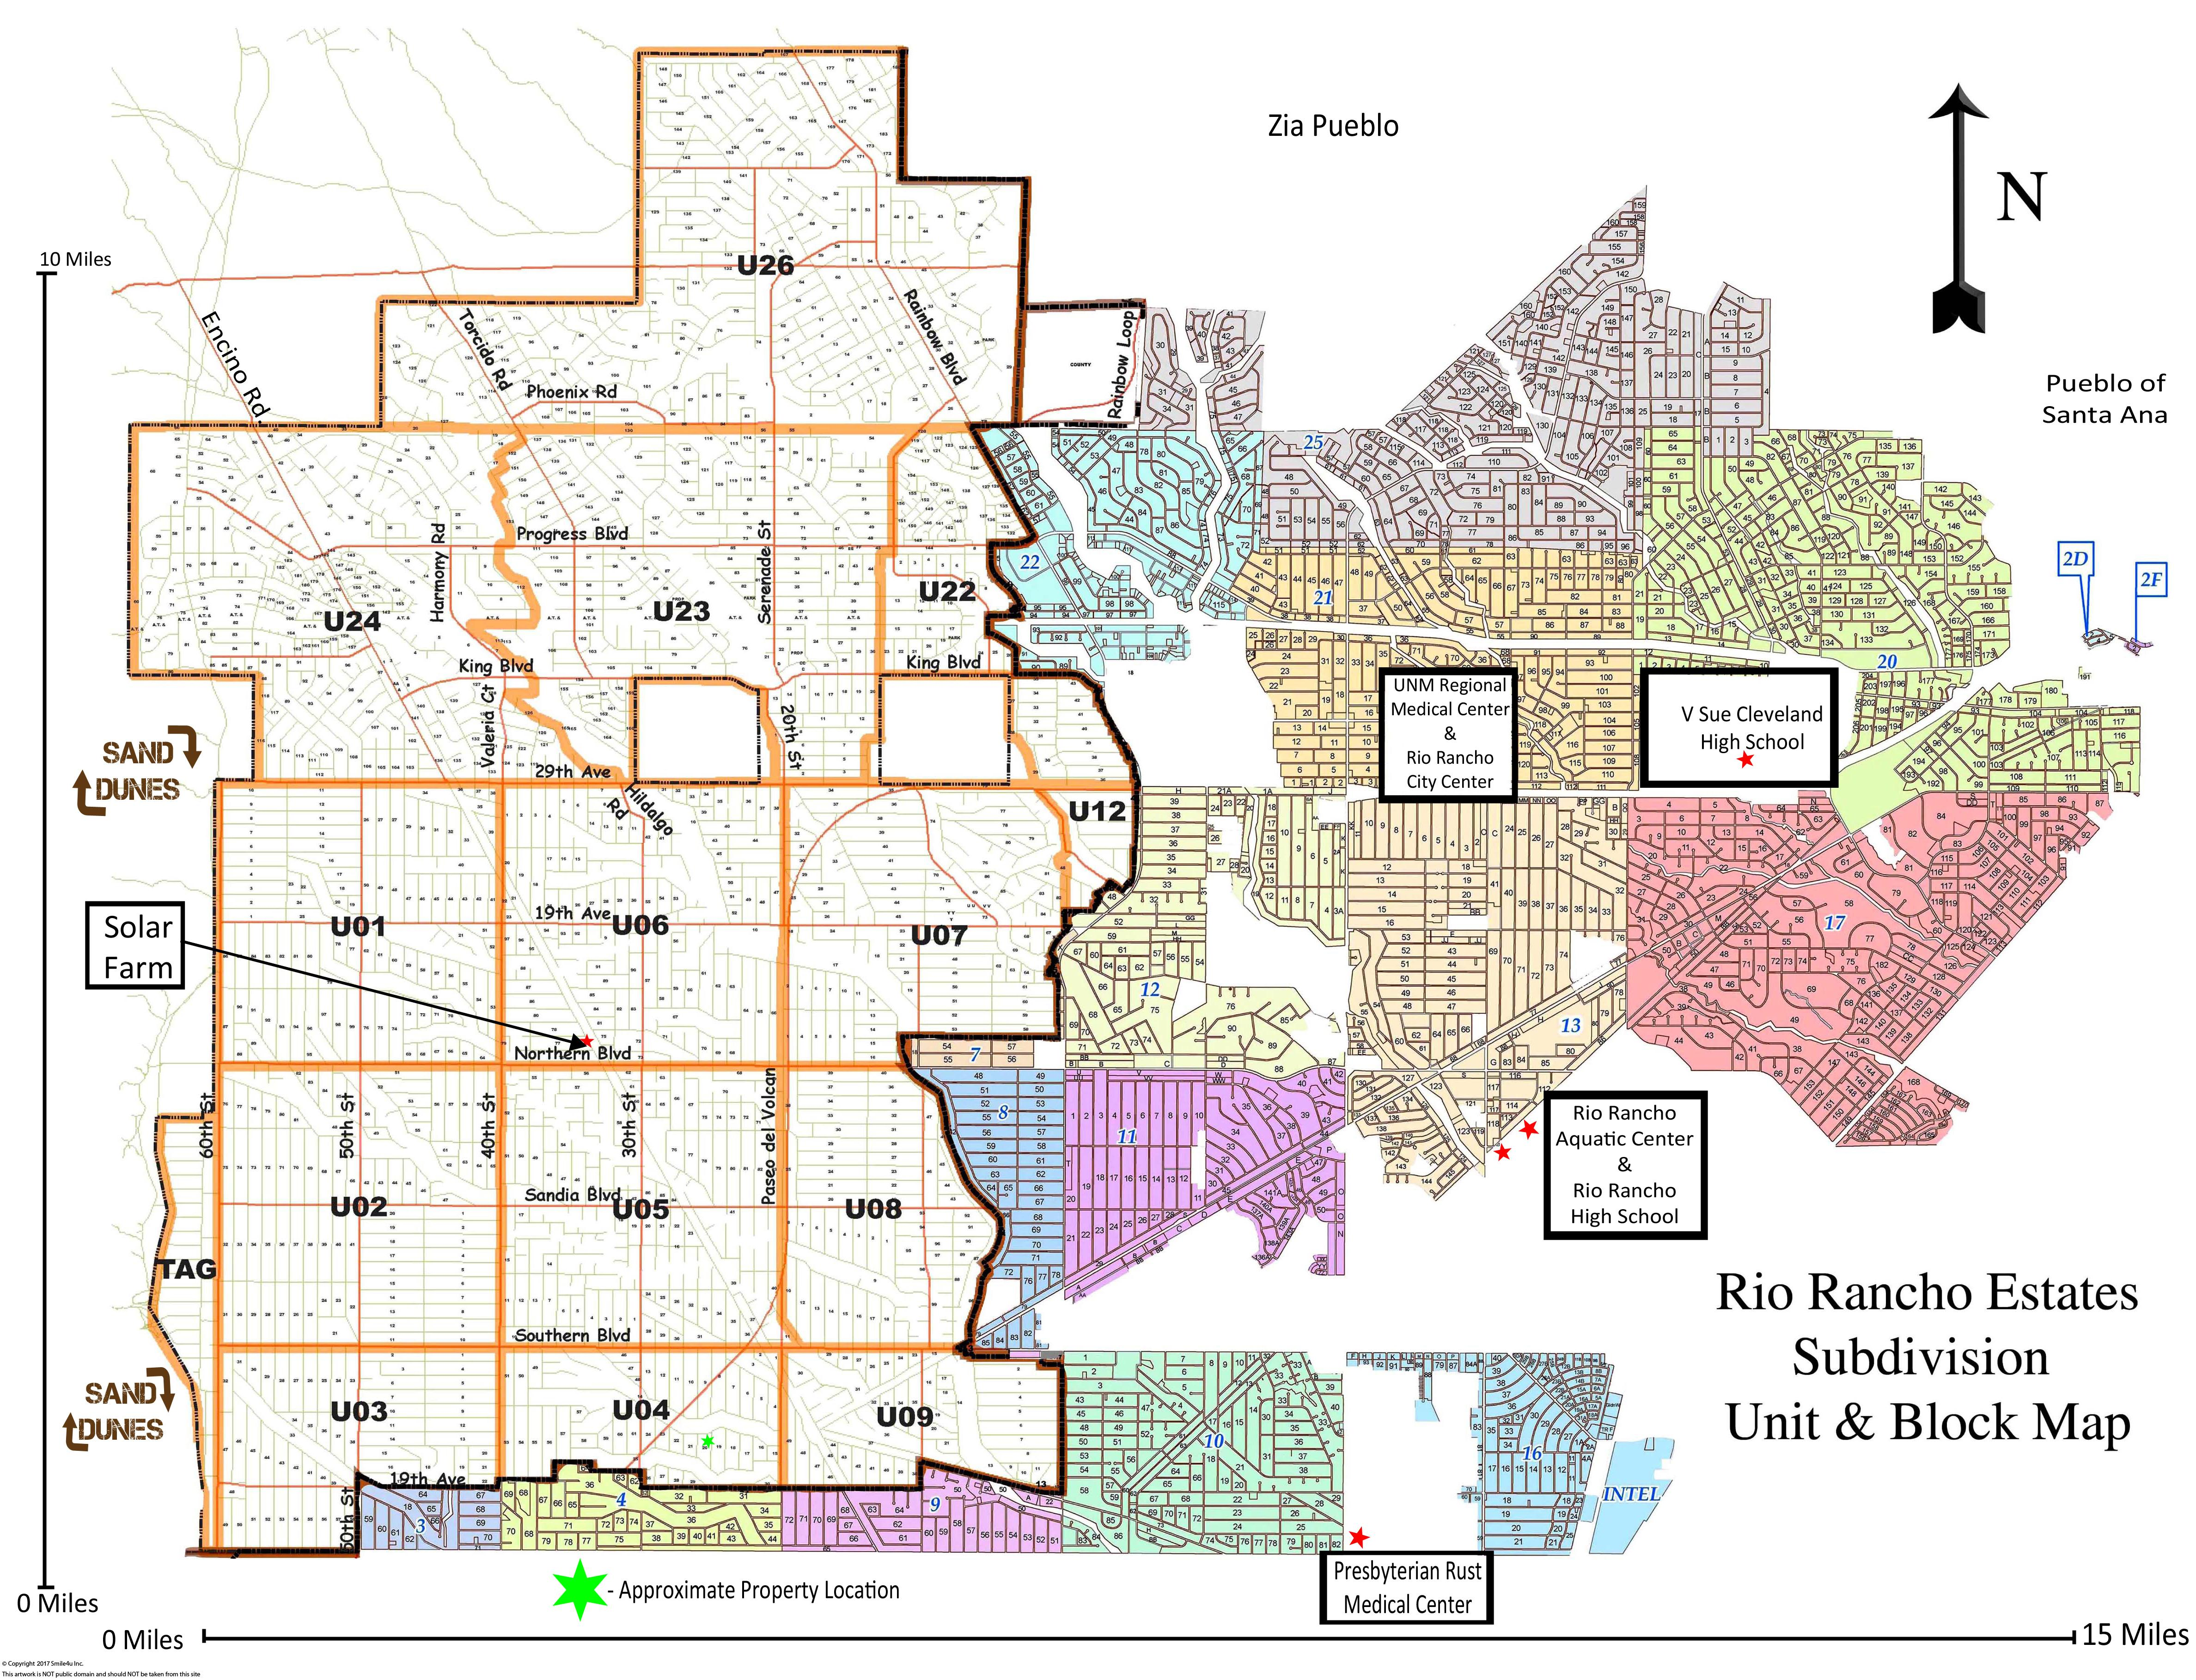 461451_watermarked_Rio Rancho Map marked places.jpg